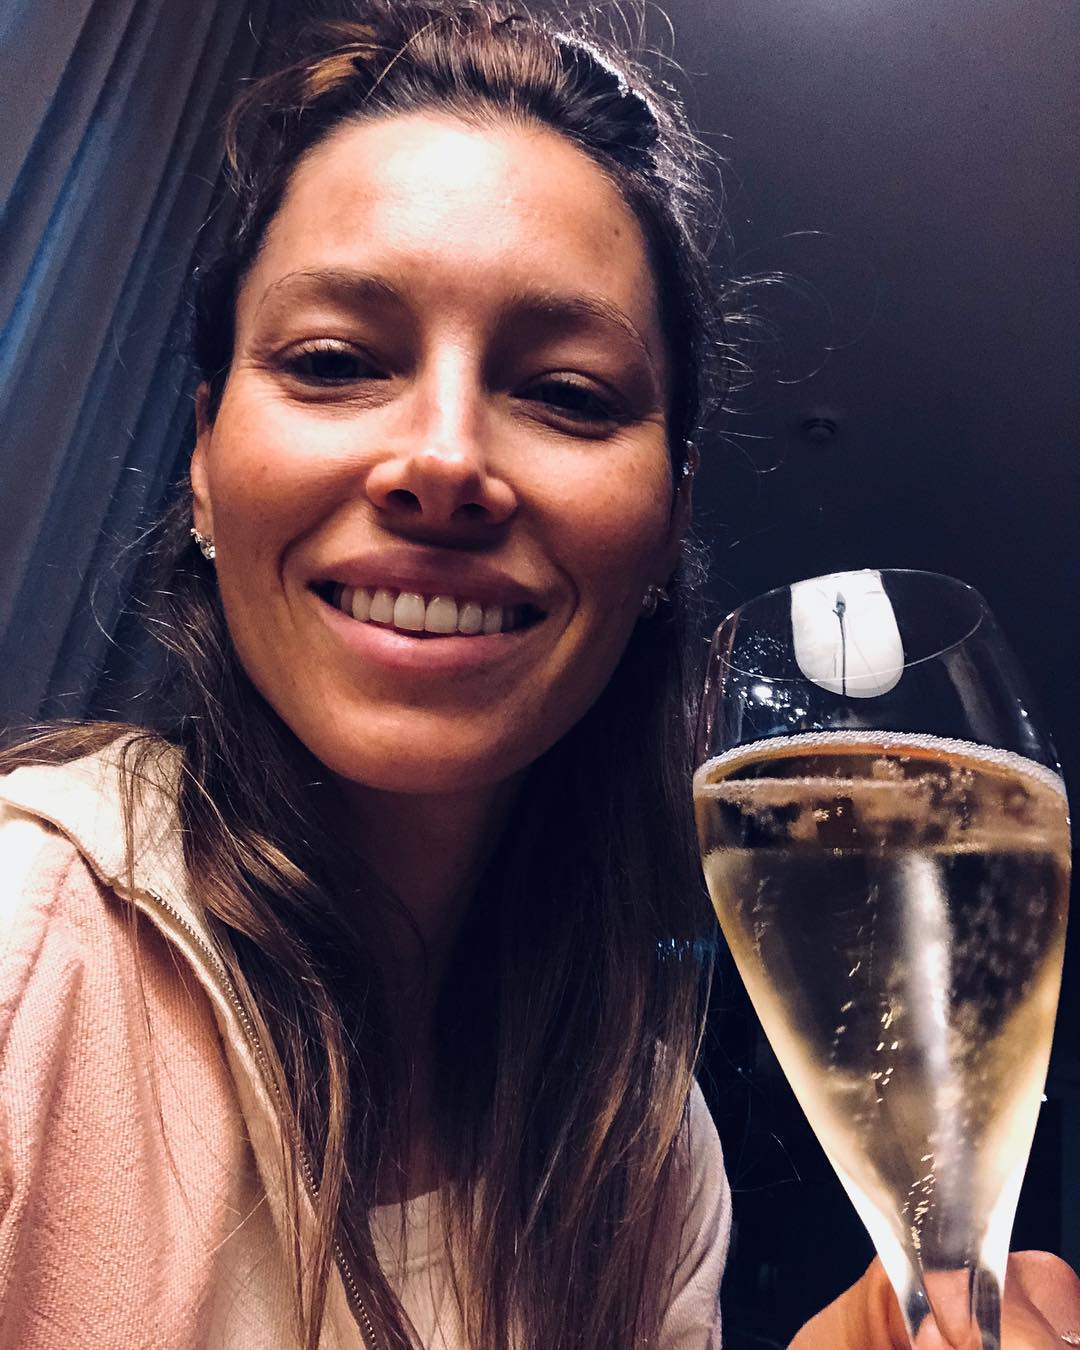 Jessica Biel With Messy Down Do Hairstyle Drinking Champagne 2019